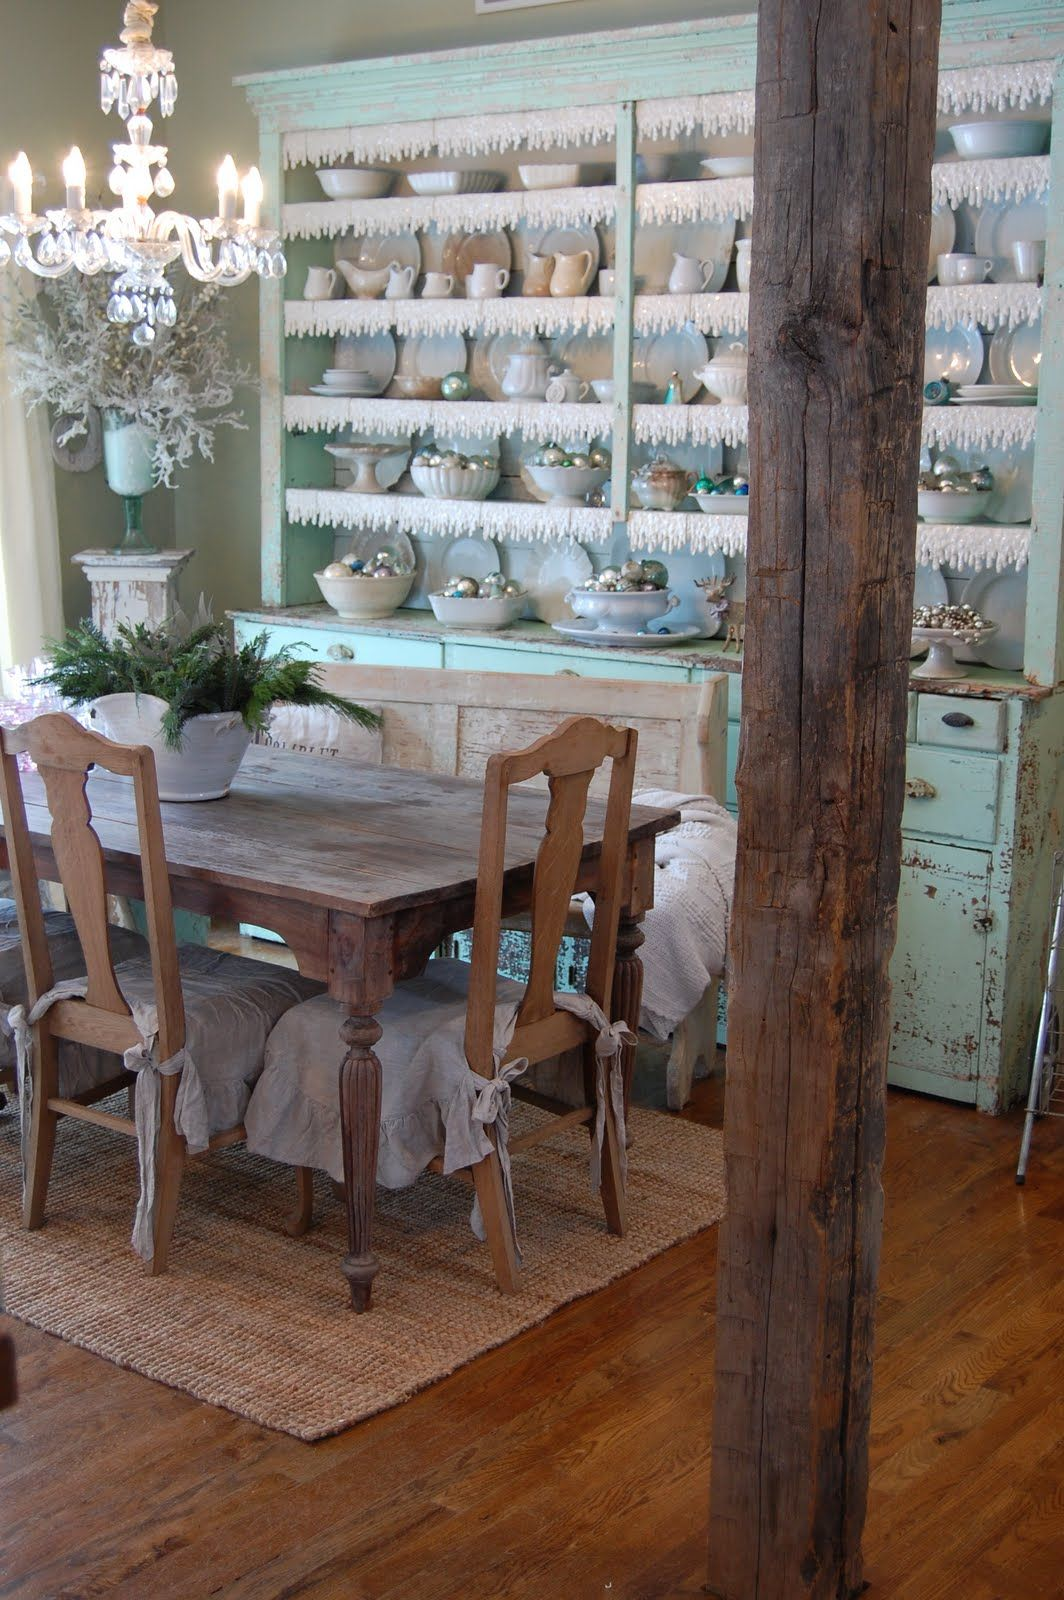 Gorgeous cupboard from Urban Farmhouse This looks like a fun place to dine